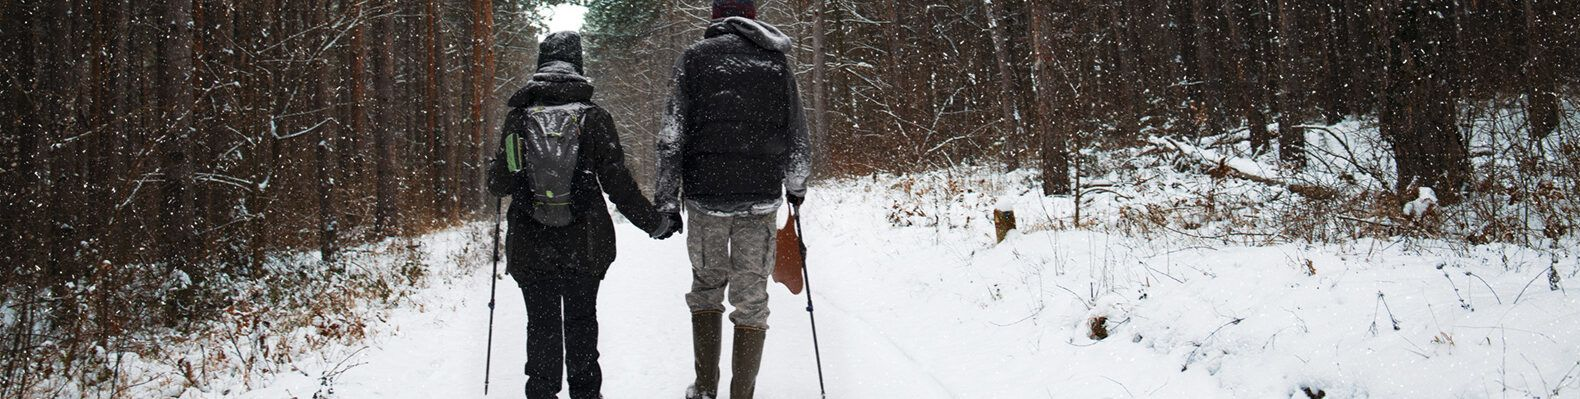 two people hiking in the snowy woods